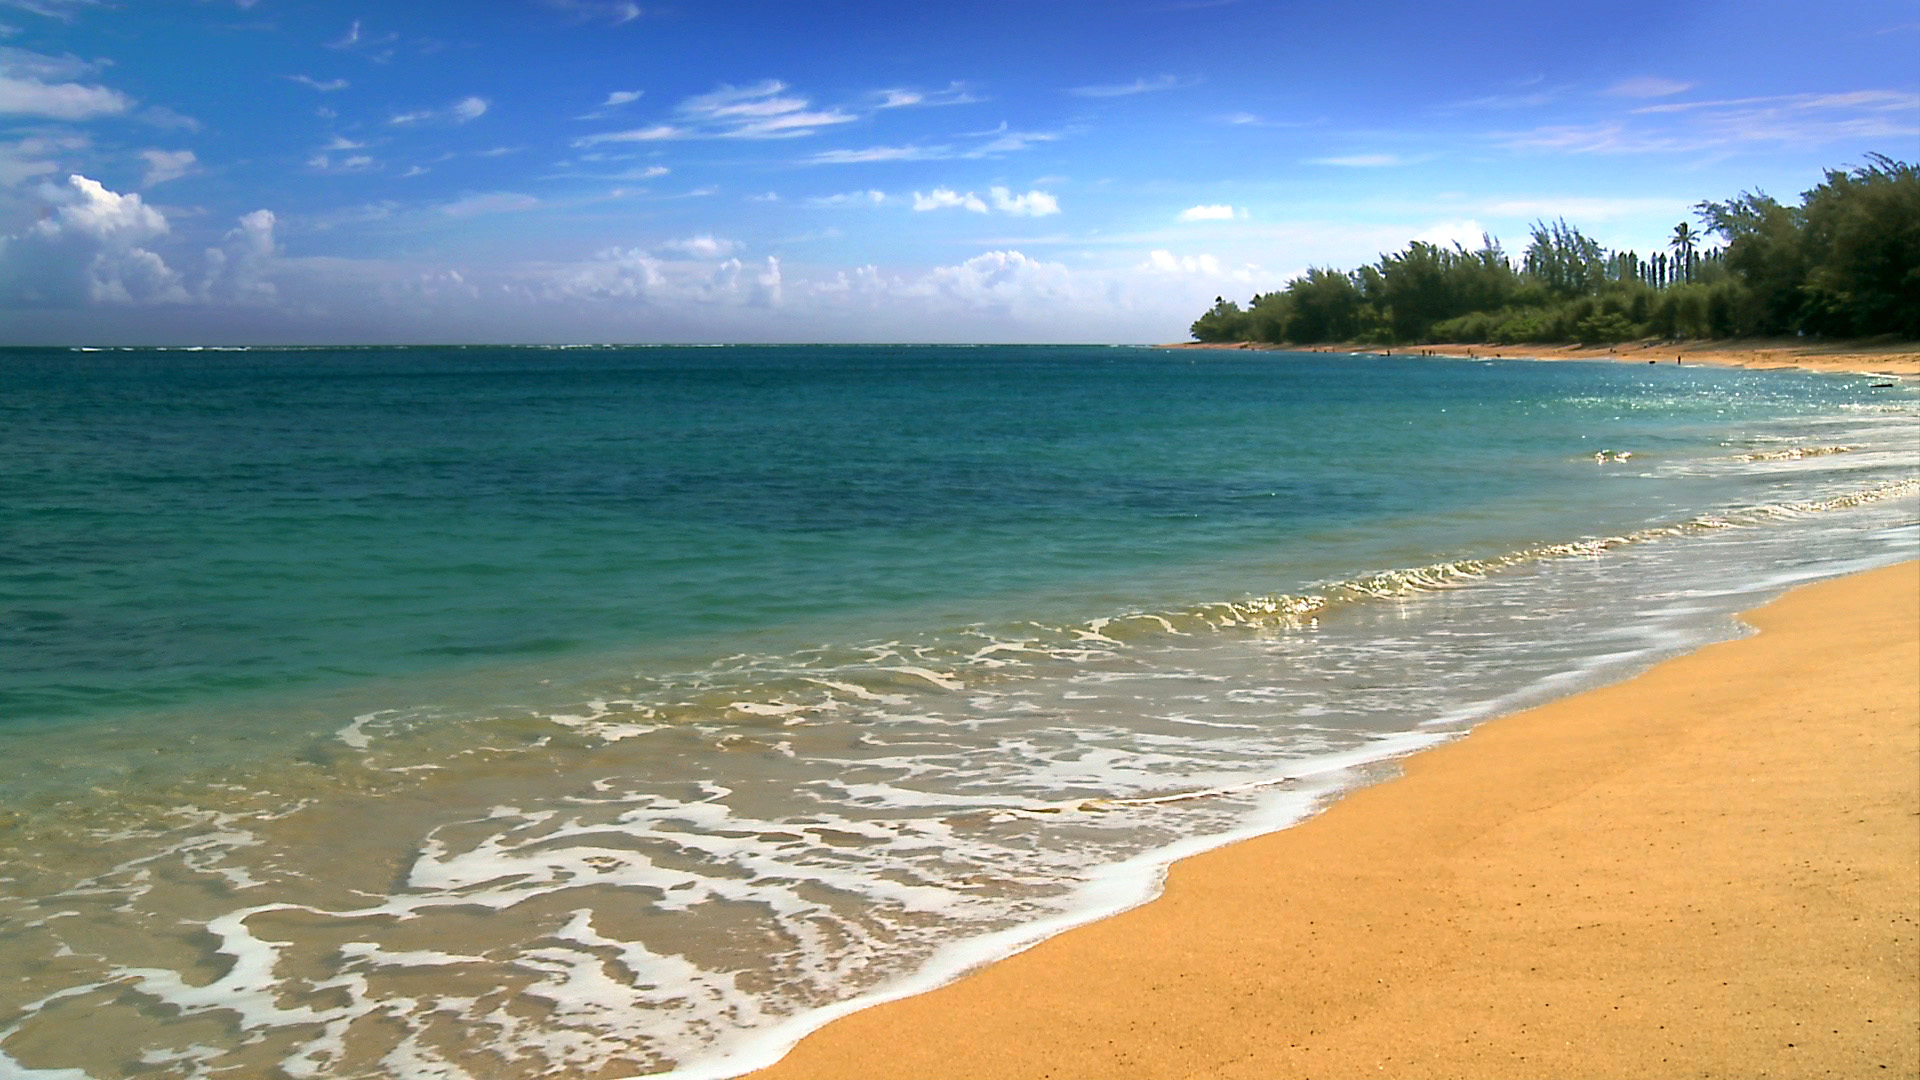 SEE The Most Beautiful Hawaii Beaches Photos from our new HD Video DVD 1920x1080